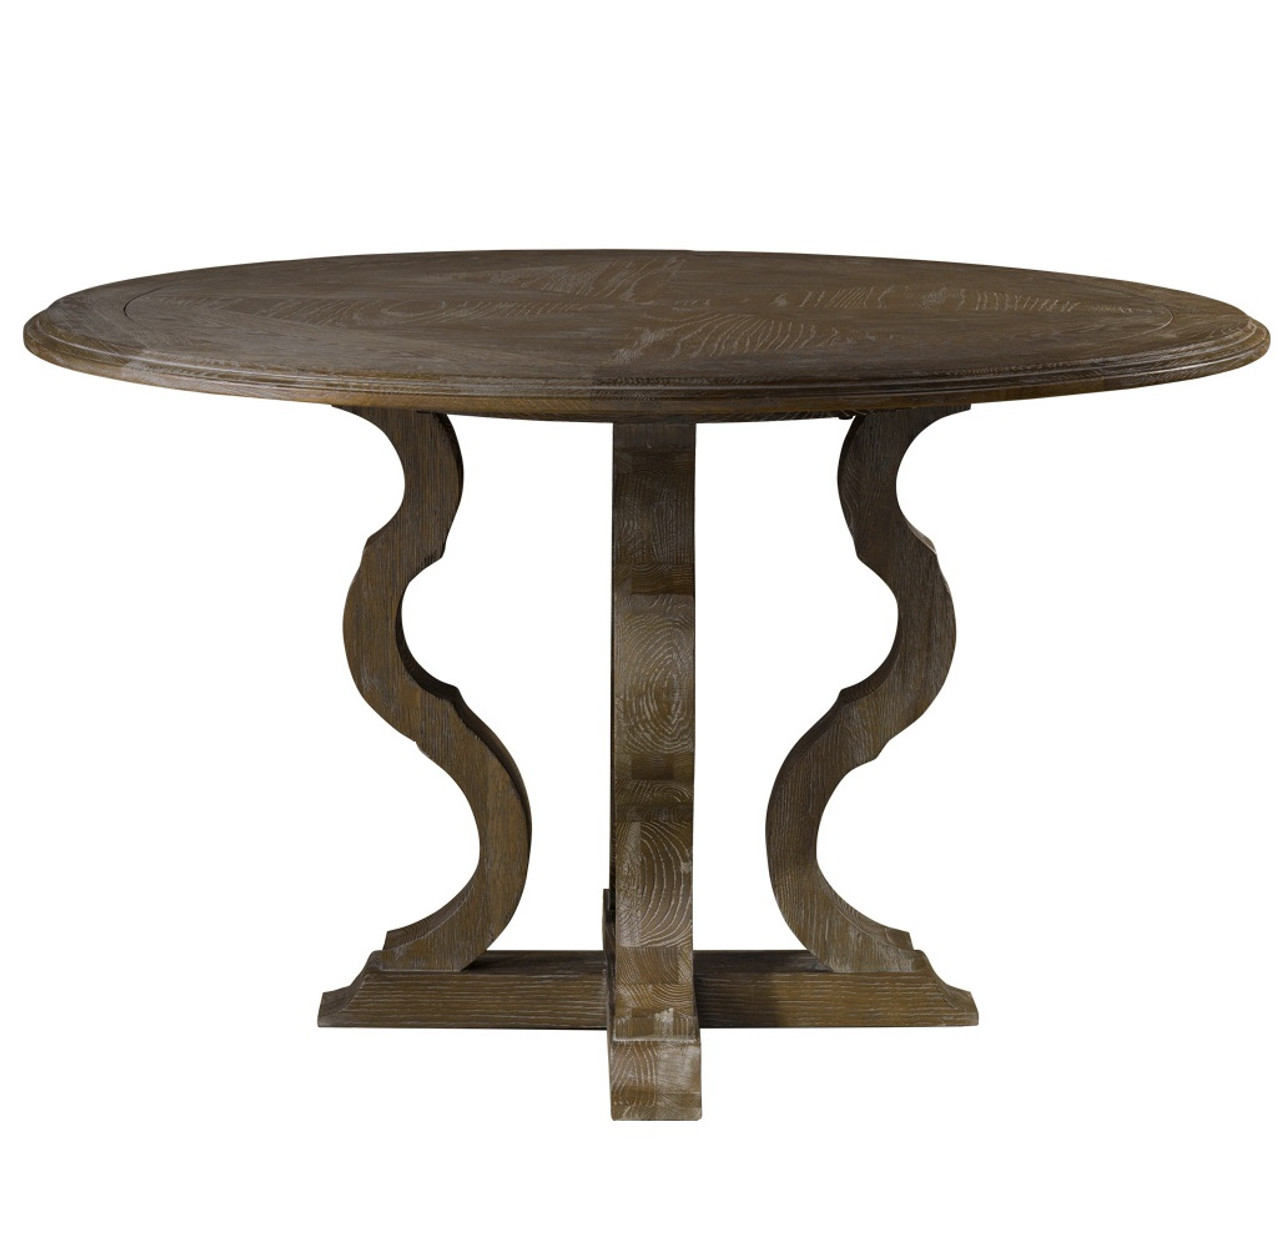 French Grey Oak Wood Round Pedestal Dining Table Zin Home - 50 inch round pedestal table